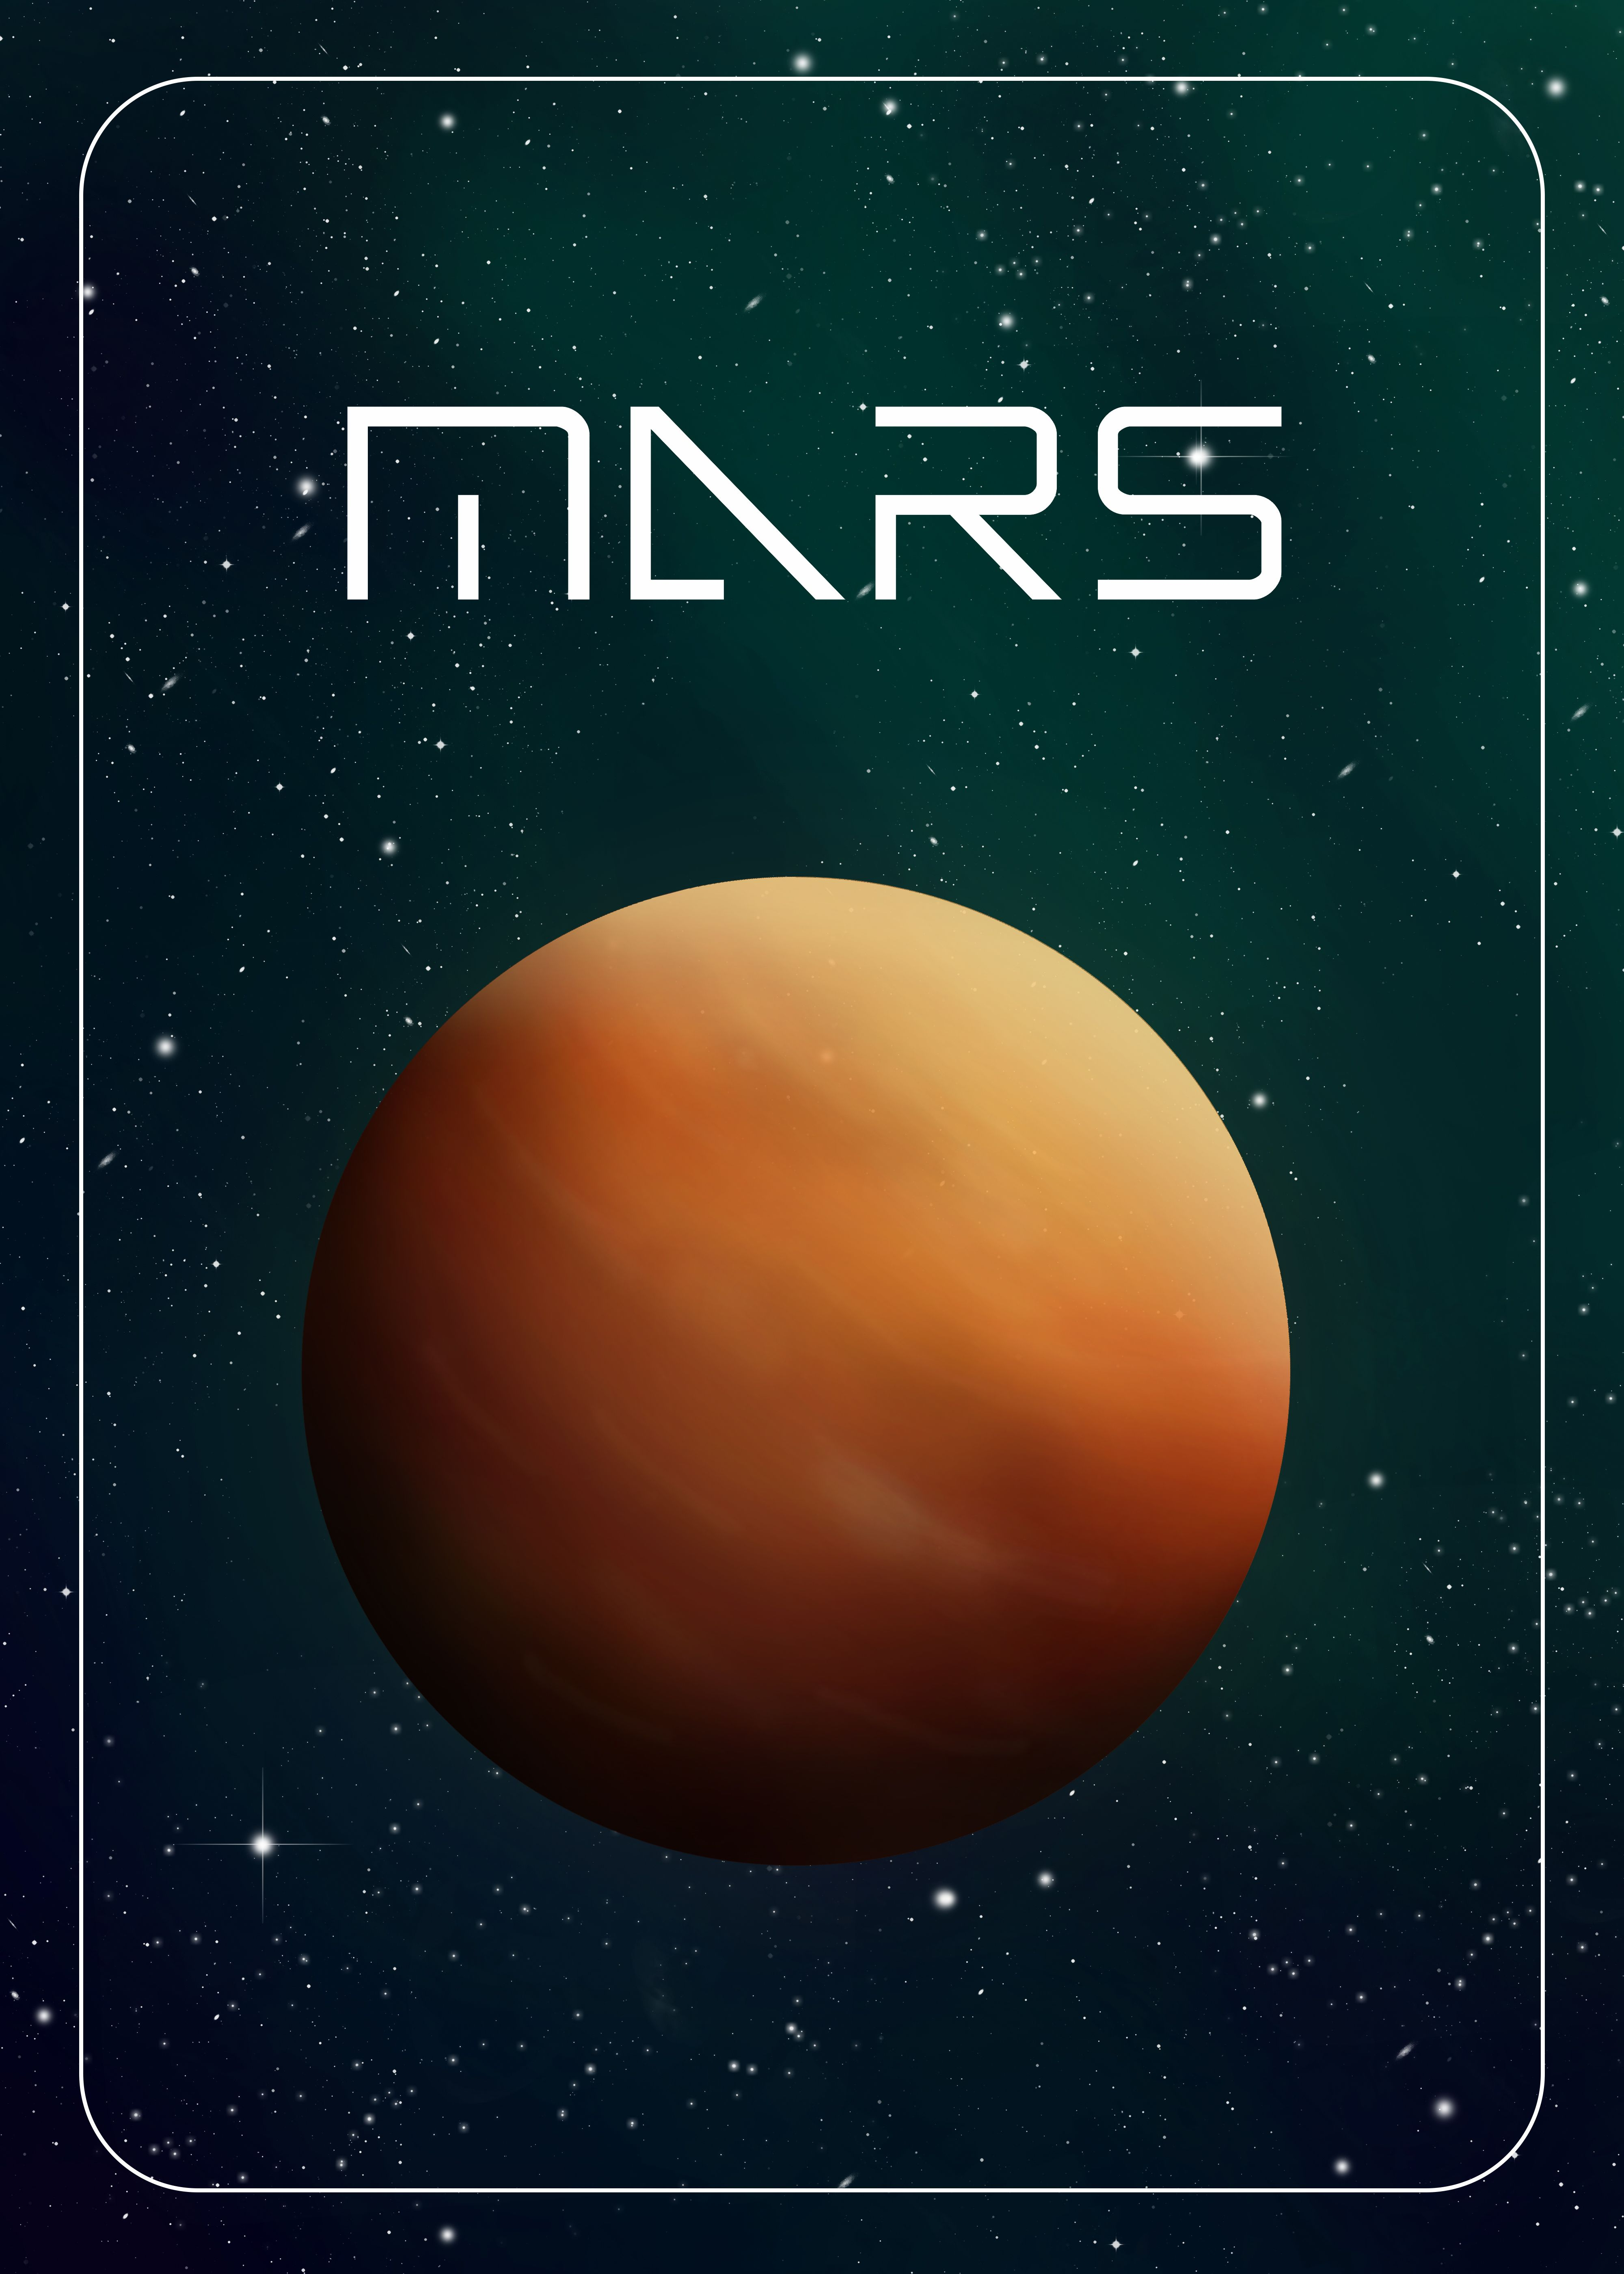 Mars Cosmos Planets Minimalistic Poster Print Metal Posters